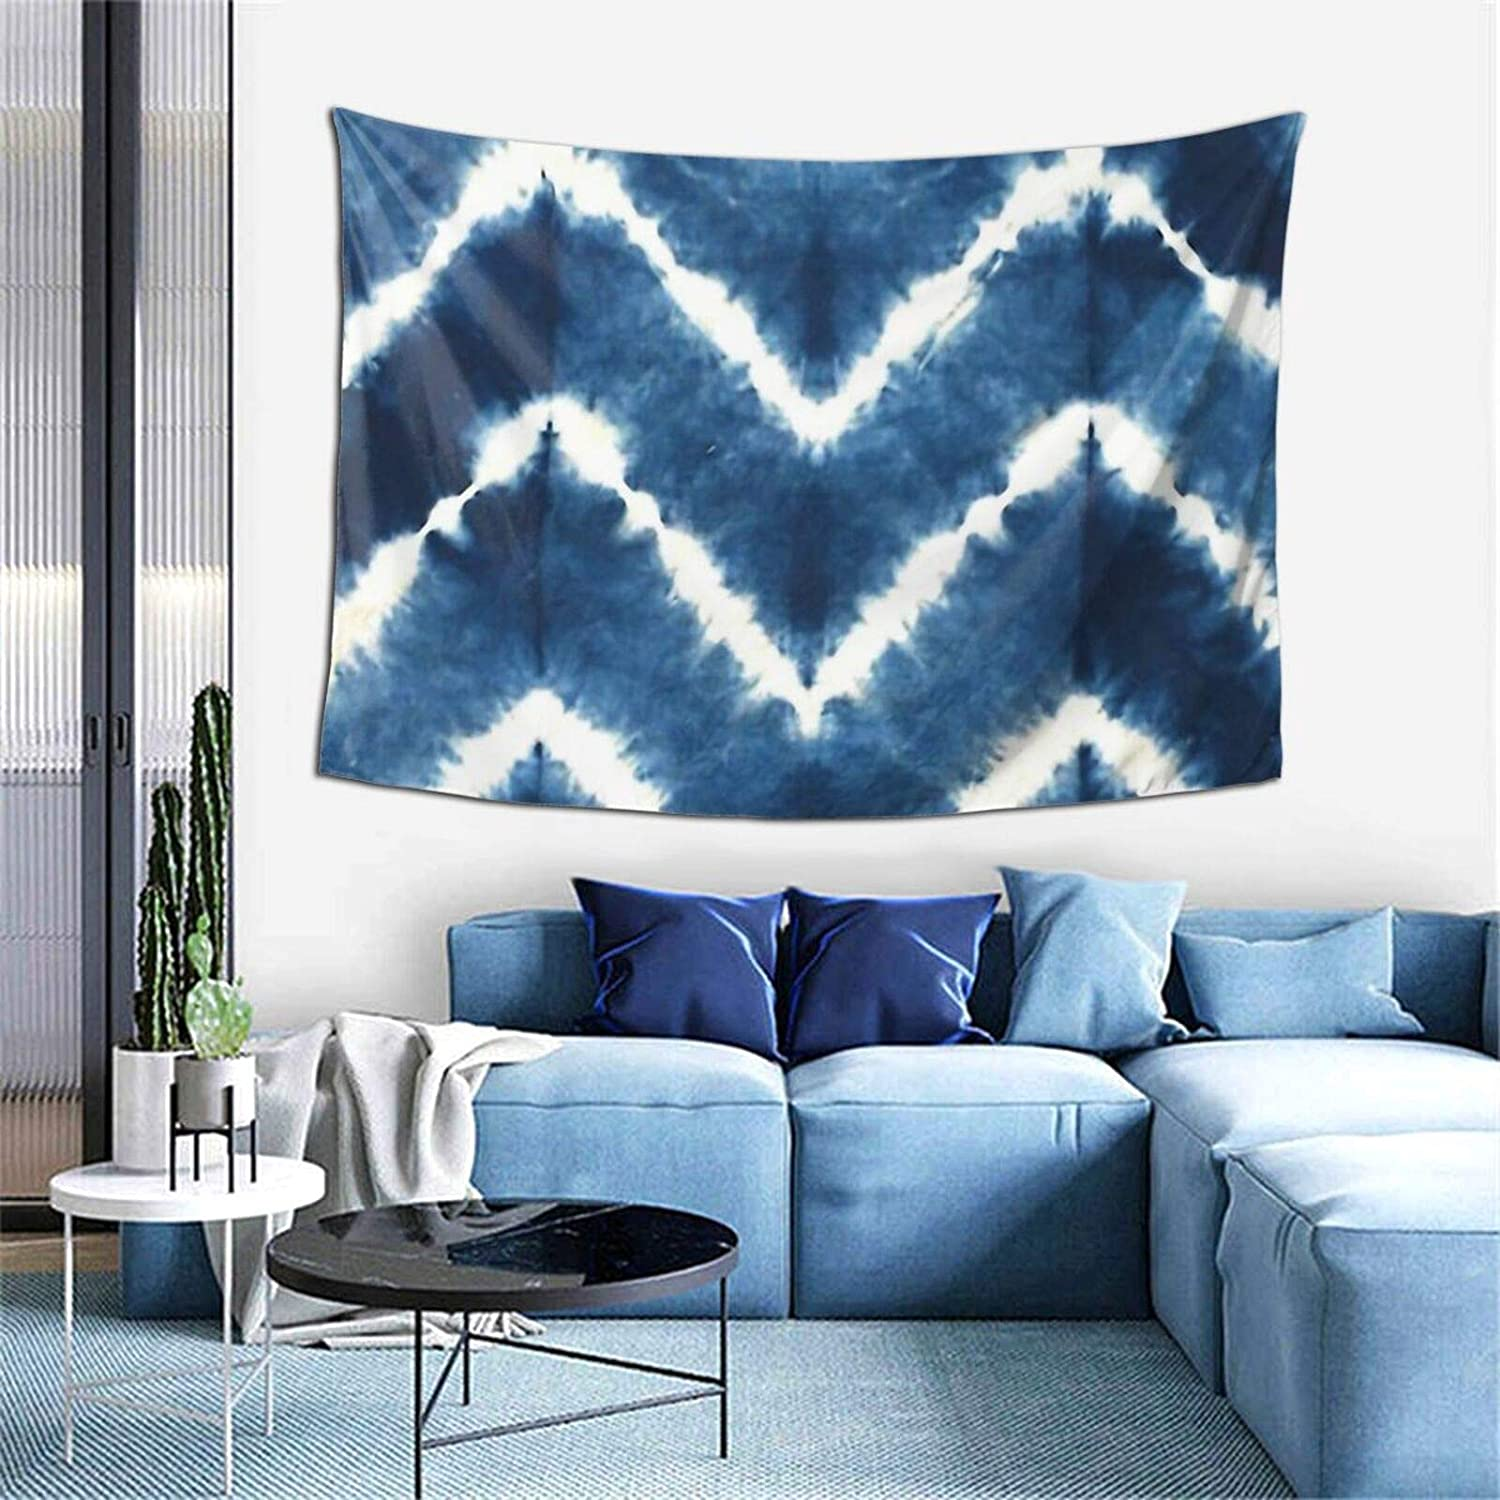 Navy and White Tie Dye Stripes Printed Tapestries Wall Hanging for Living Room Home Decor 60inX40in